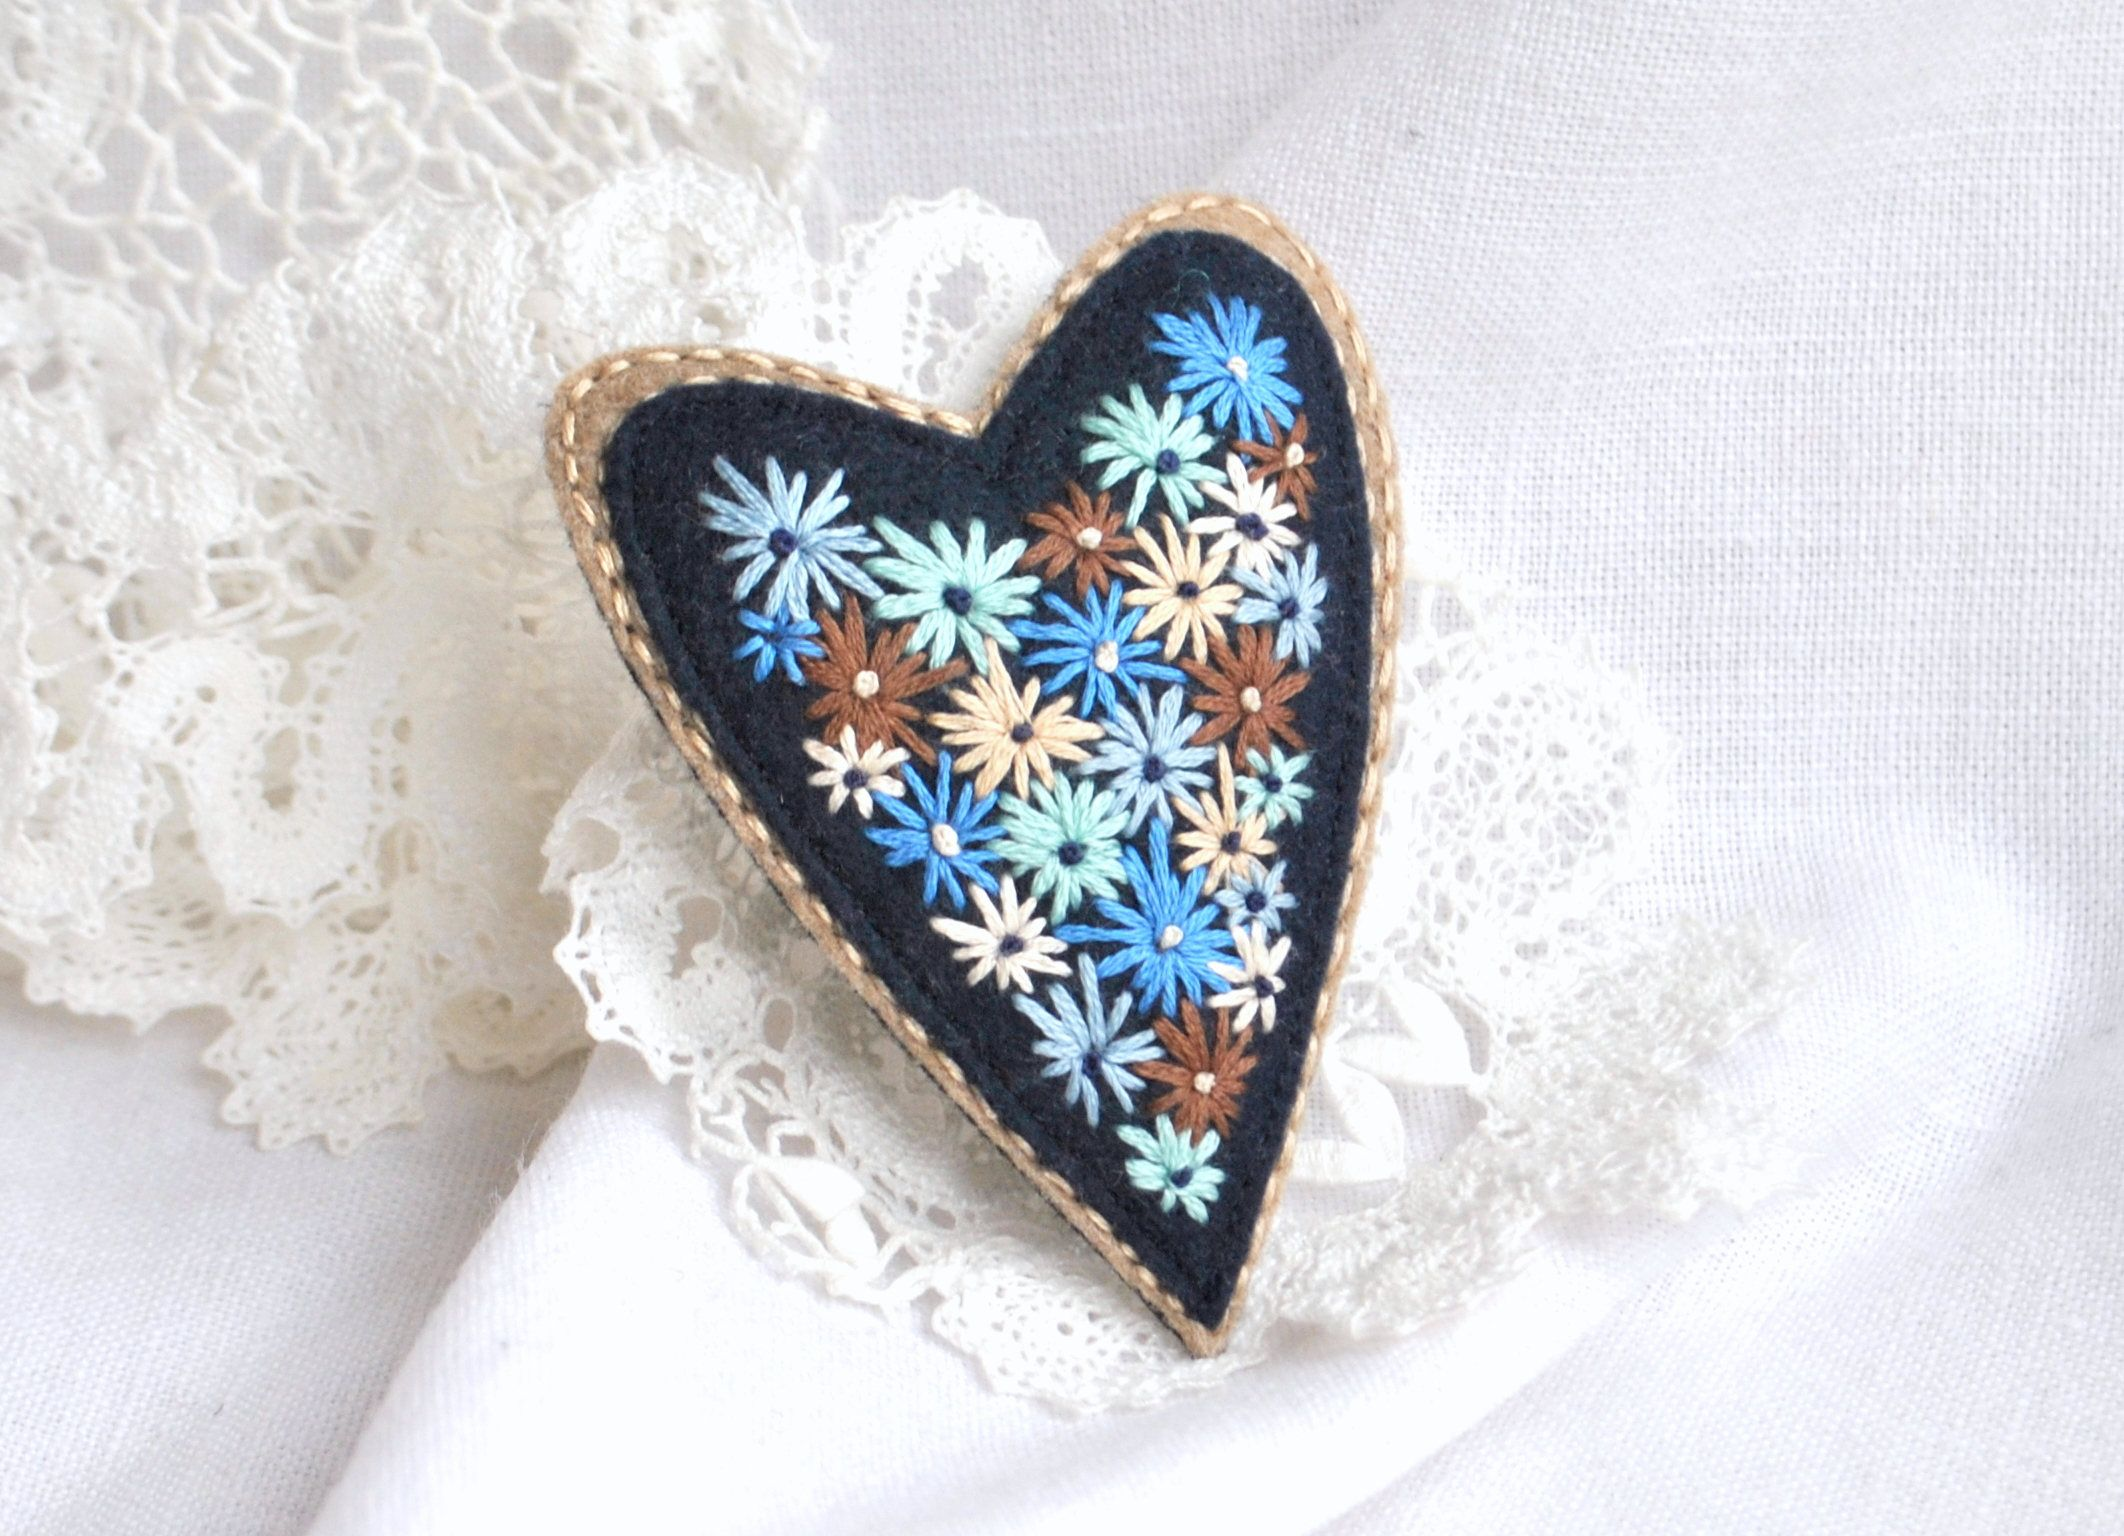 flickr photos novembermoon cathy embroidery b by in brooch cullis progress